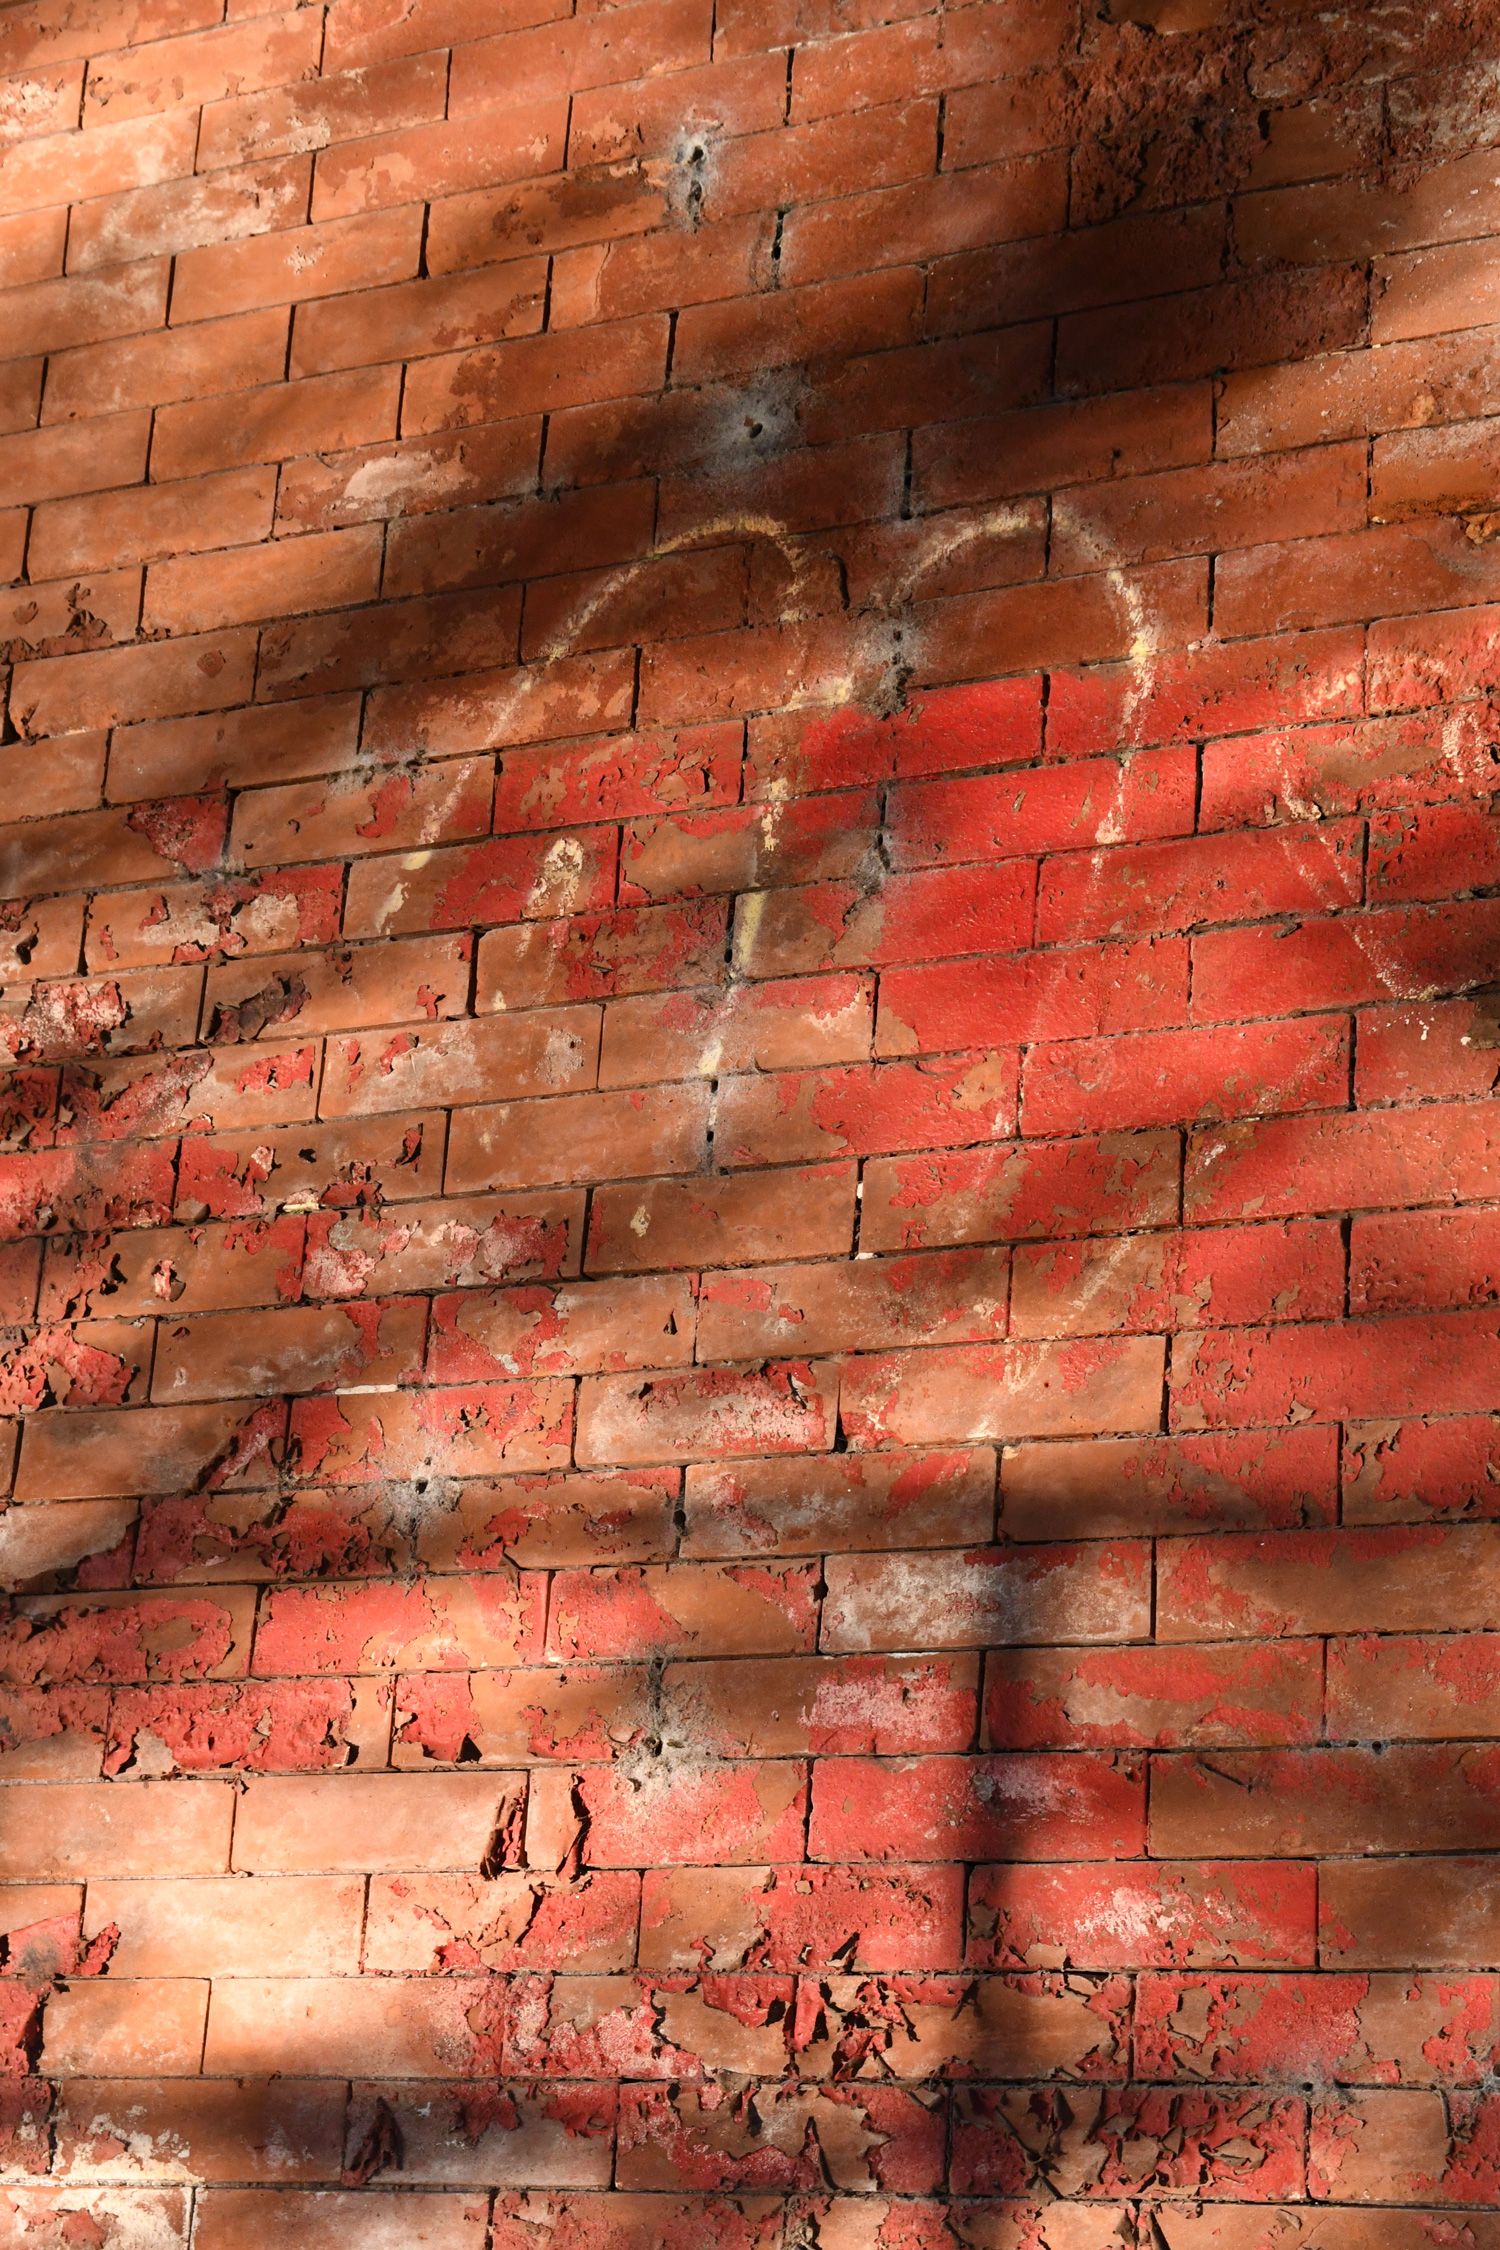 Light reflected off of water onto brick, Prospect Park